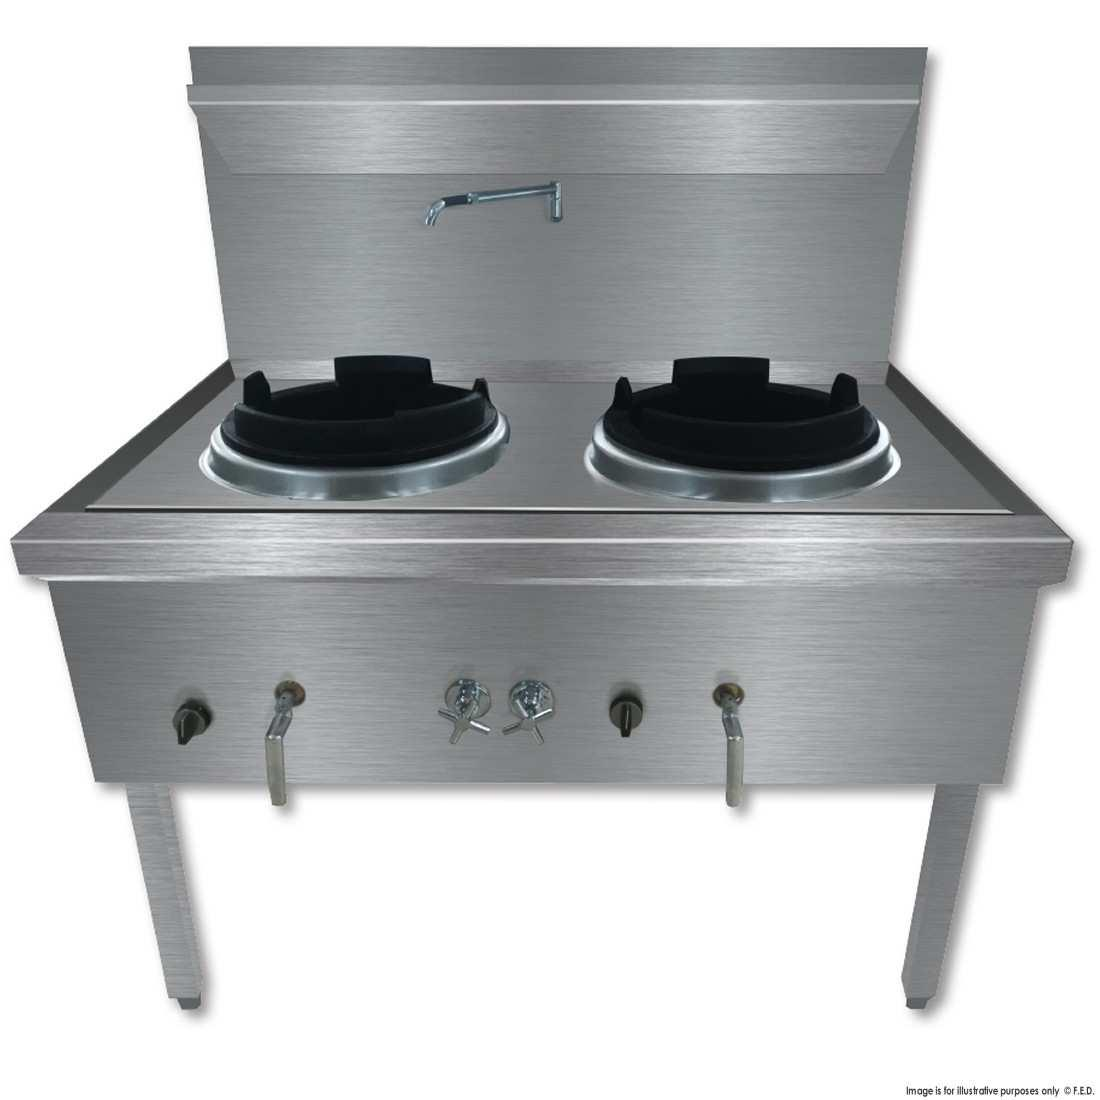 WW-2L Stainless Steel Waterless LPG Gas Double Wok